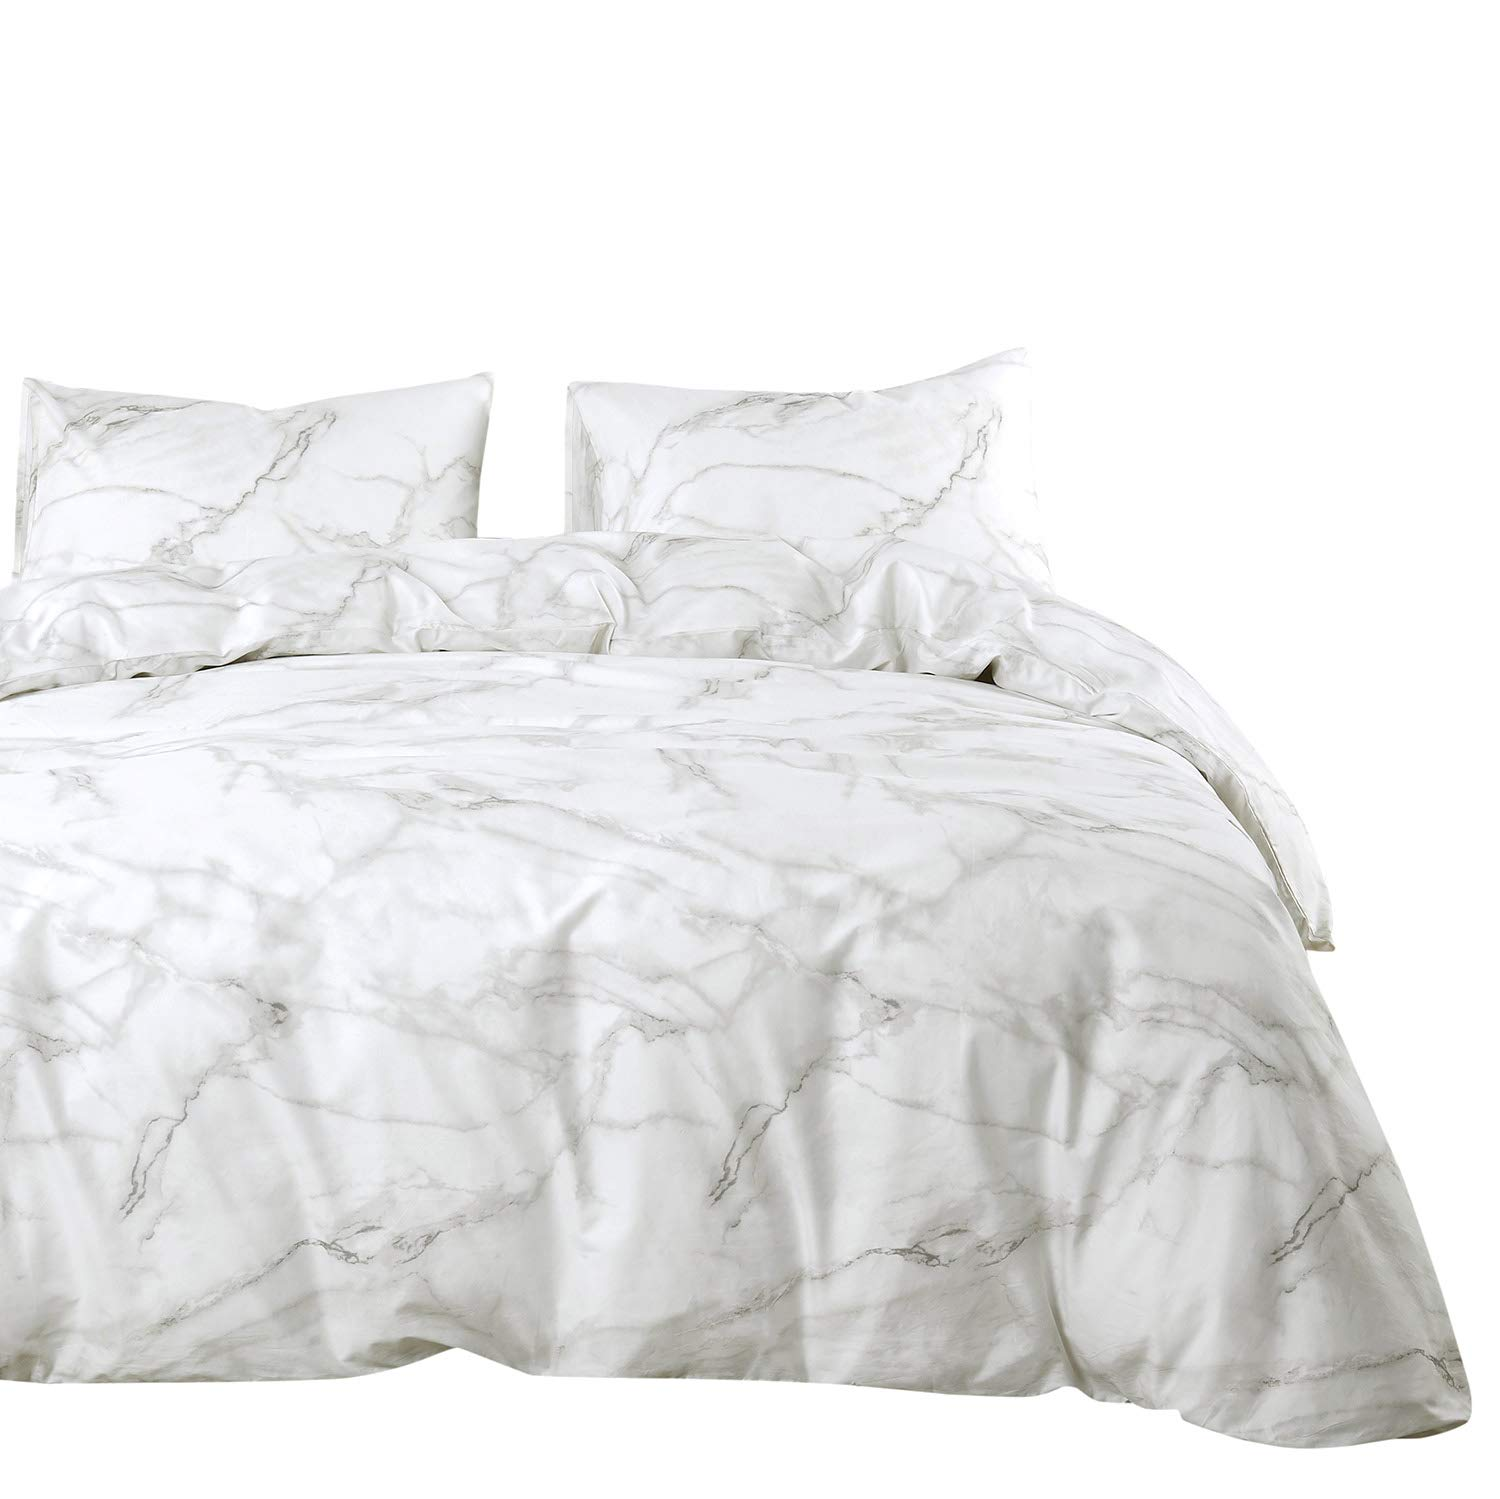 Wake In Cloud - Marble Comforter Set, 100% Cotton Fabric with Soft Microfiber Fill Bedding, Grey Gray Black and White Modern Pattern Printed (3pcs, Queen Size)